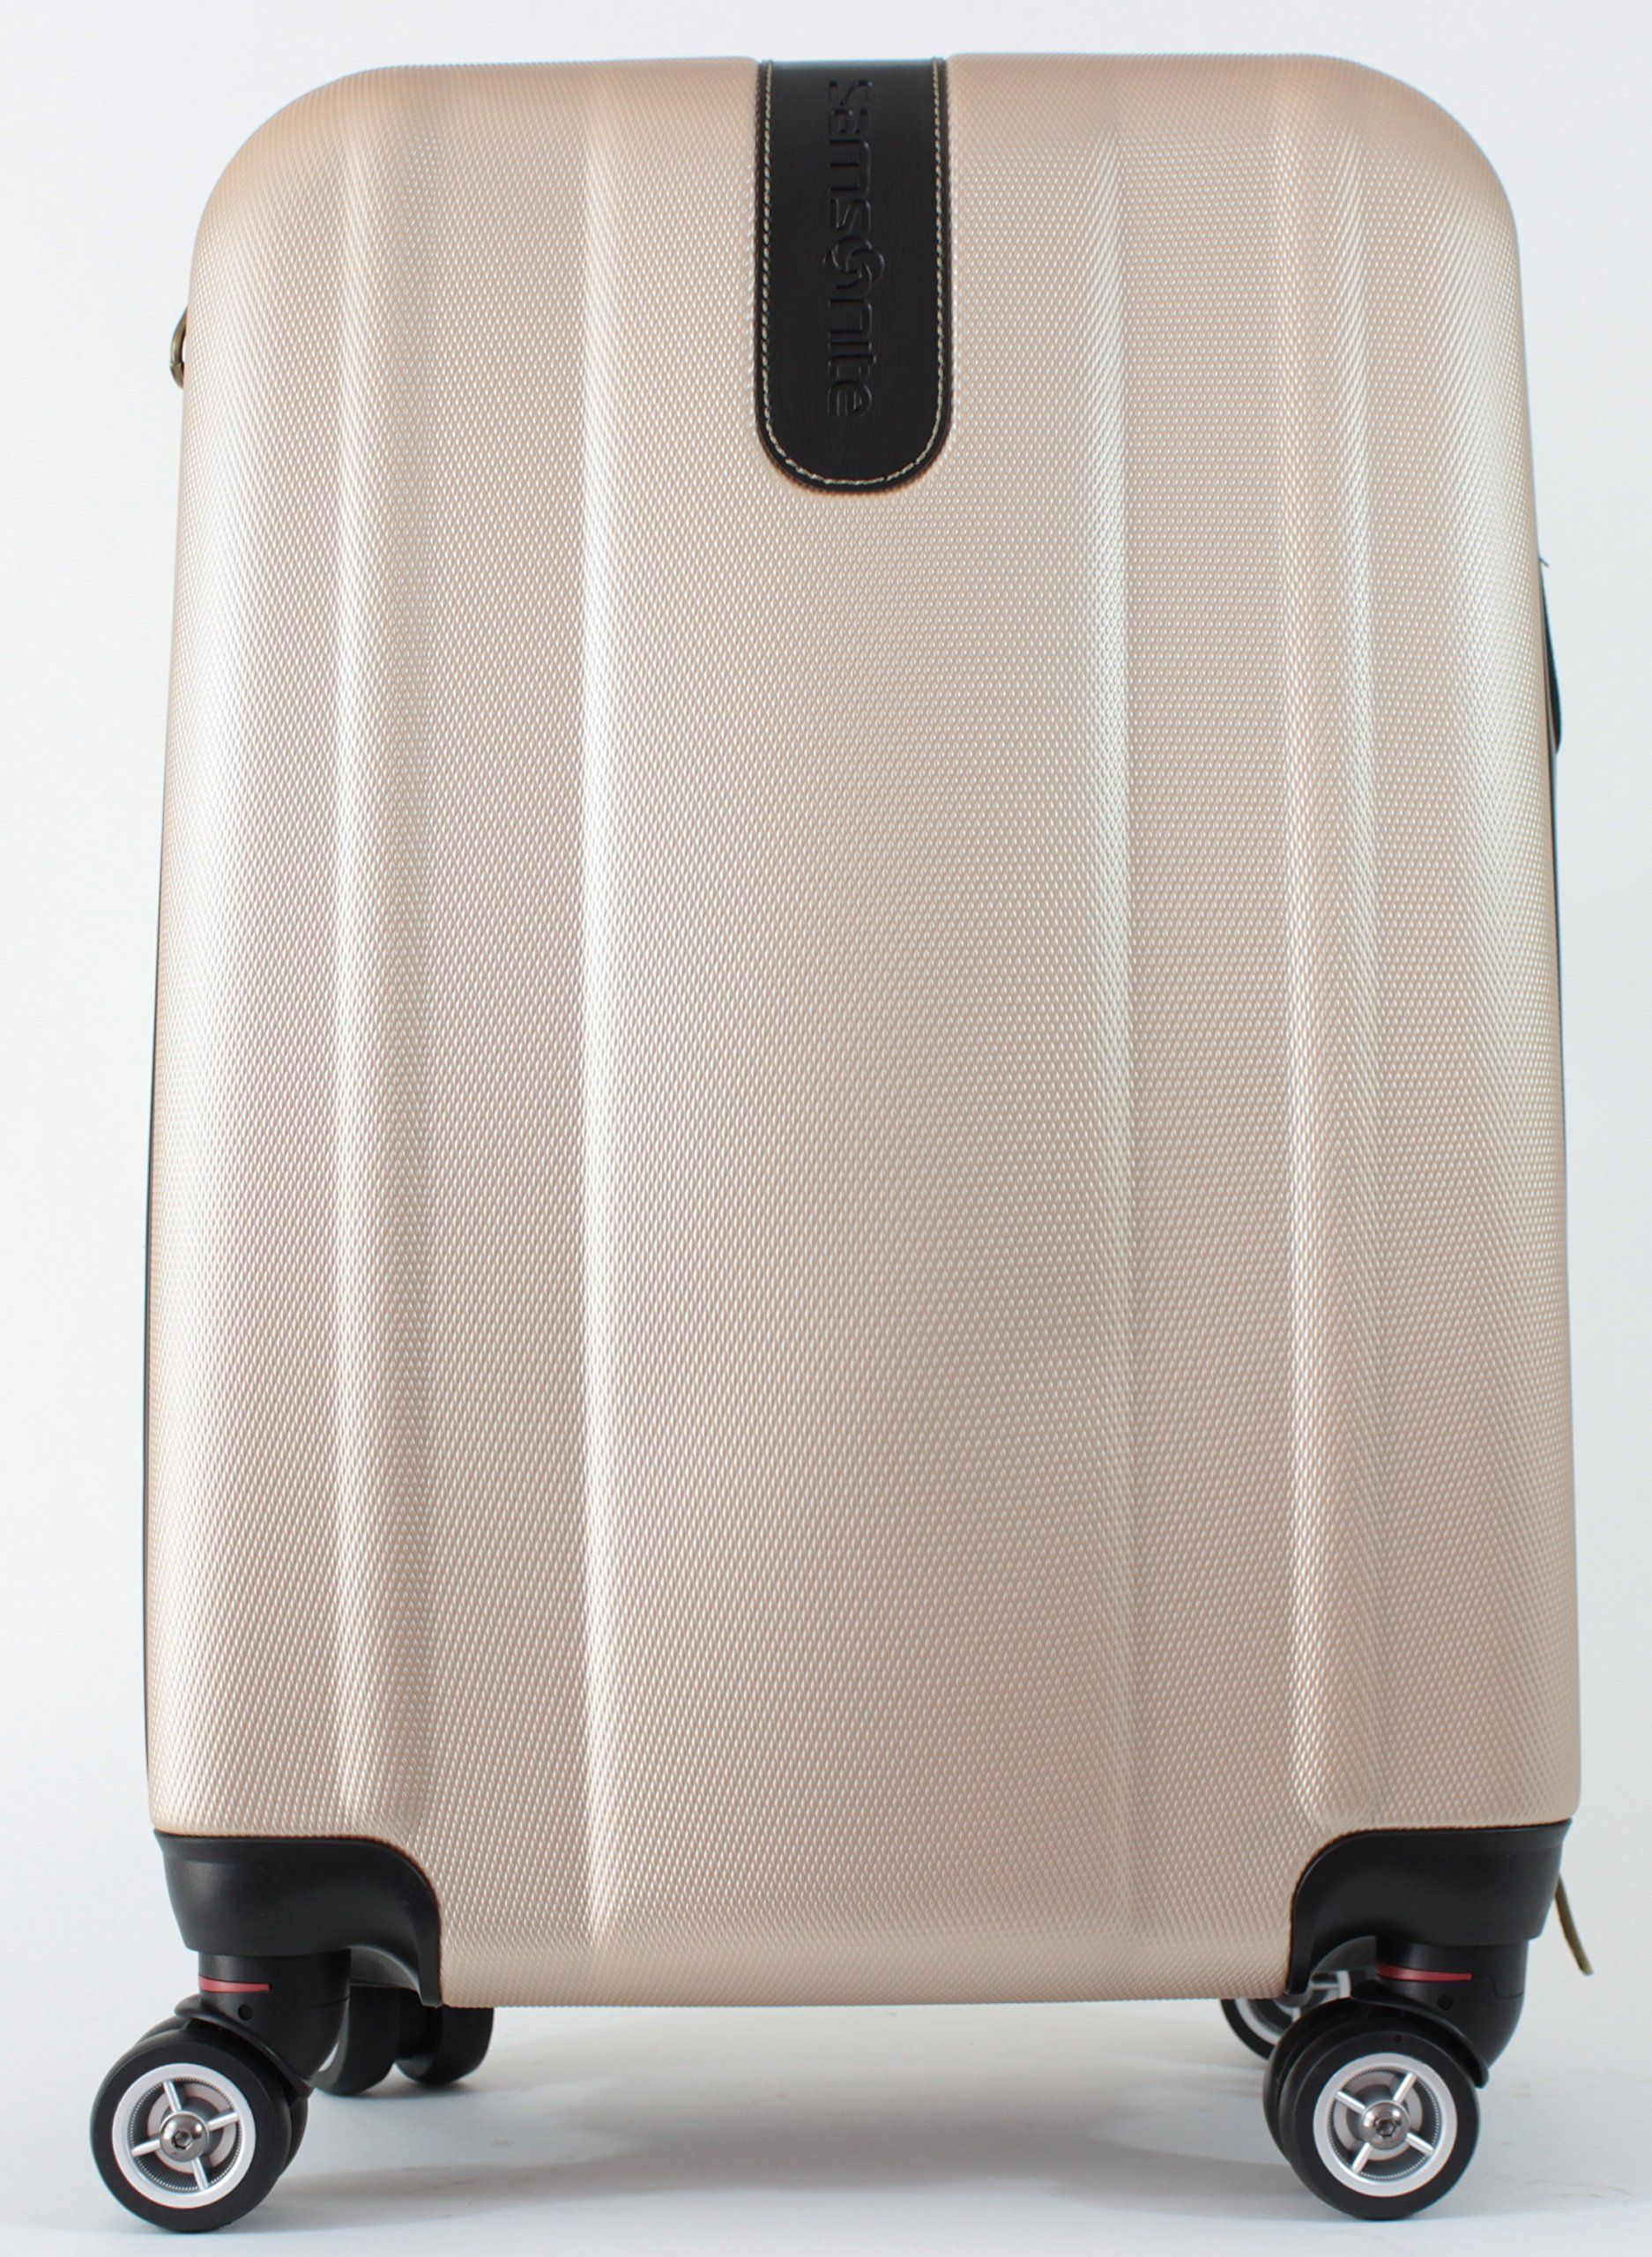 a264ee5a8b5 Travel in style with the Samsonite Luggage Oyster Bay DLX Carry-on Spinner  Suitcase 20 Inch in Blush Gold